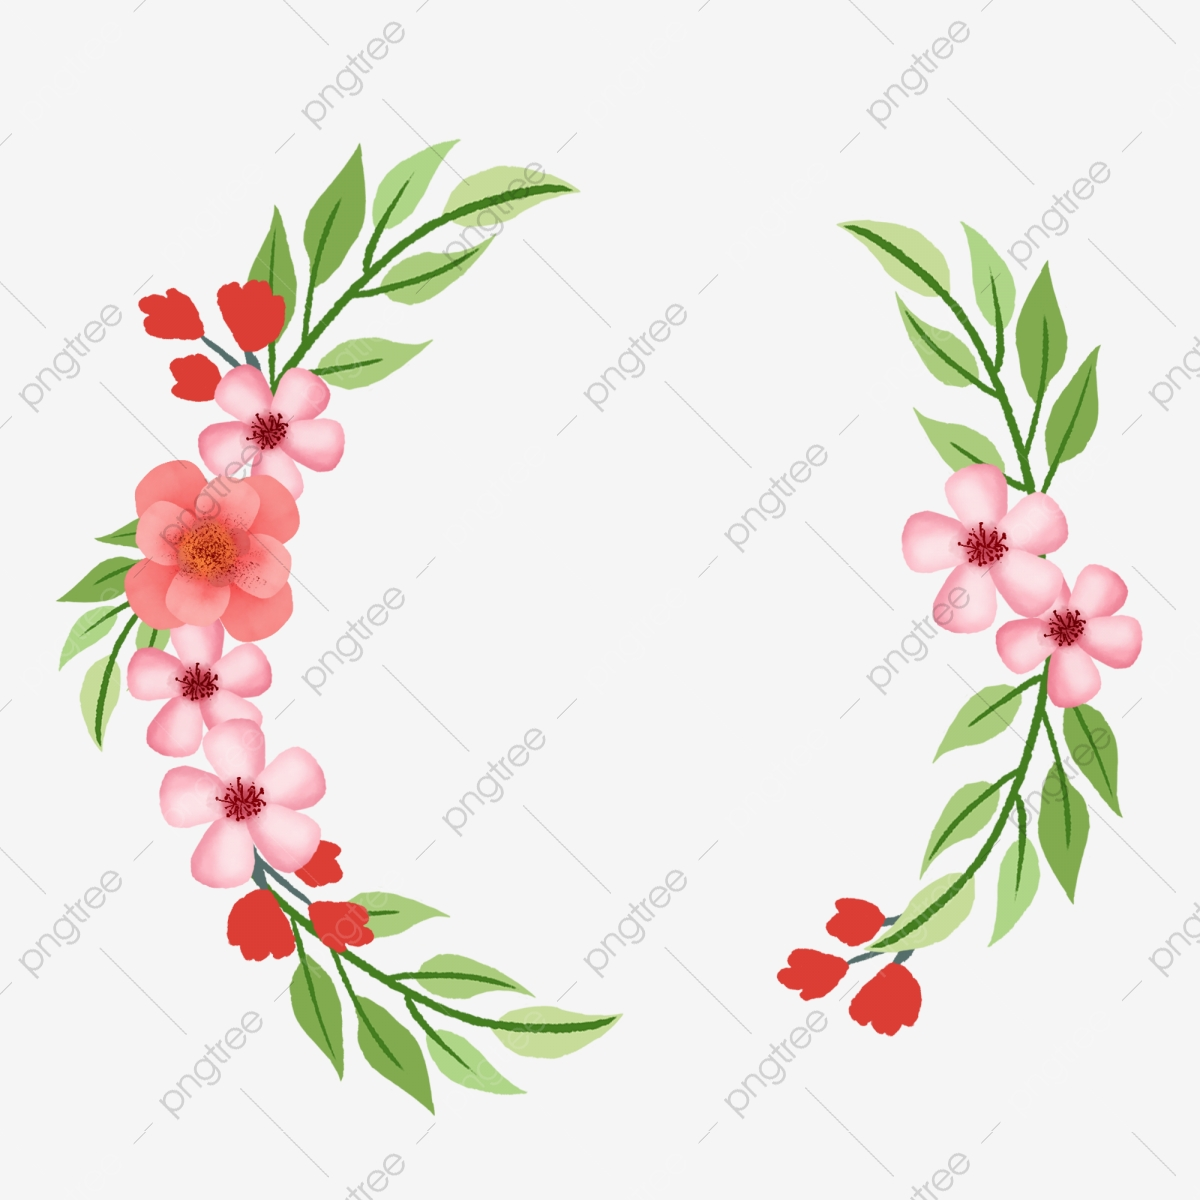 Simple Hand Drawn Wind Floral Border Design Element Drawn Style